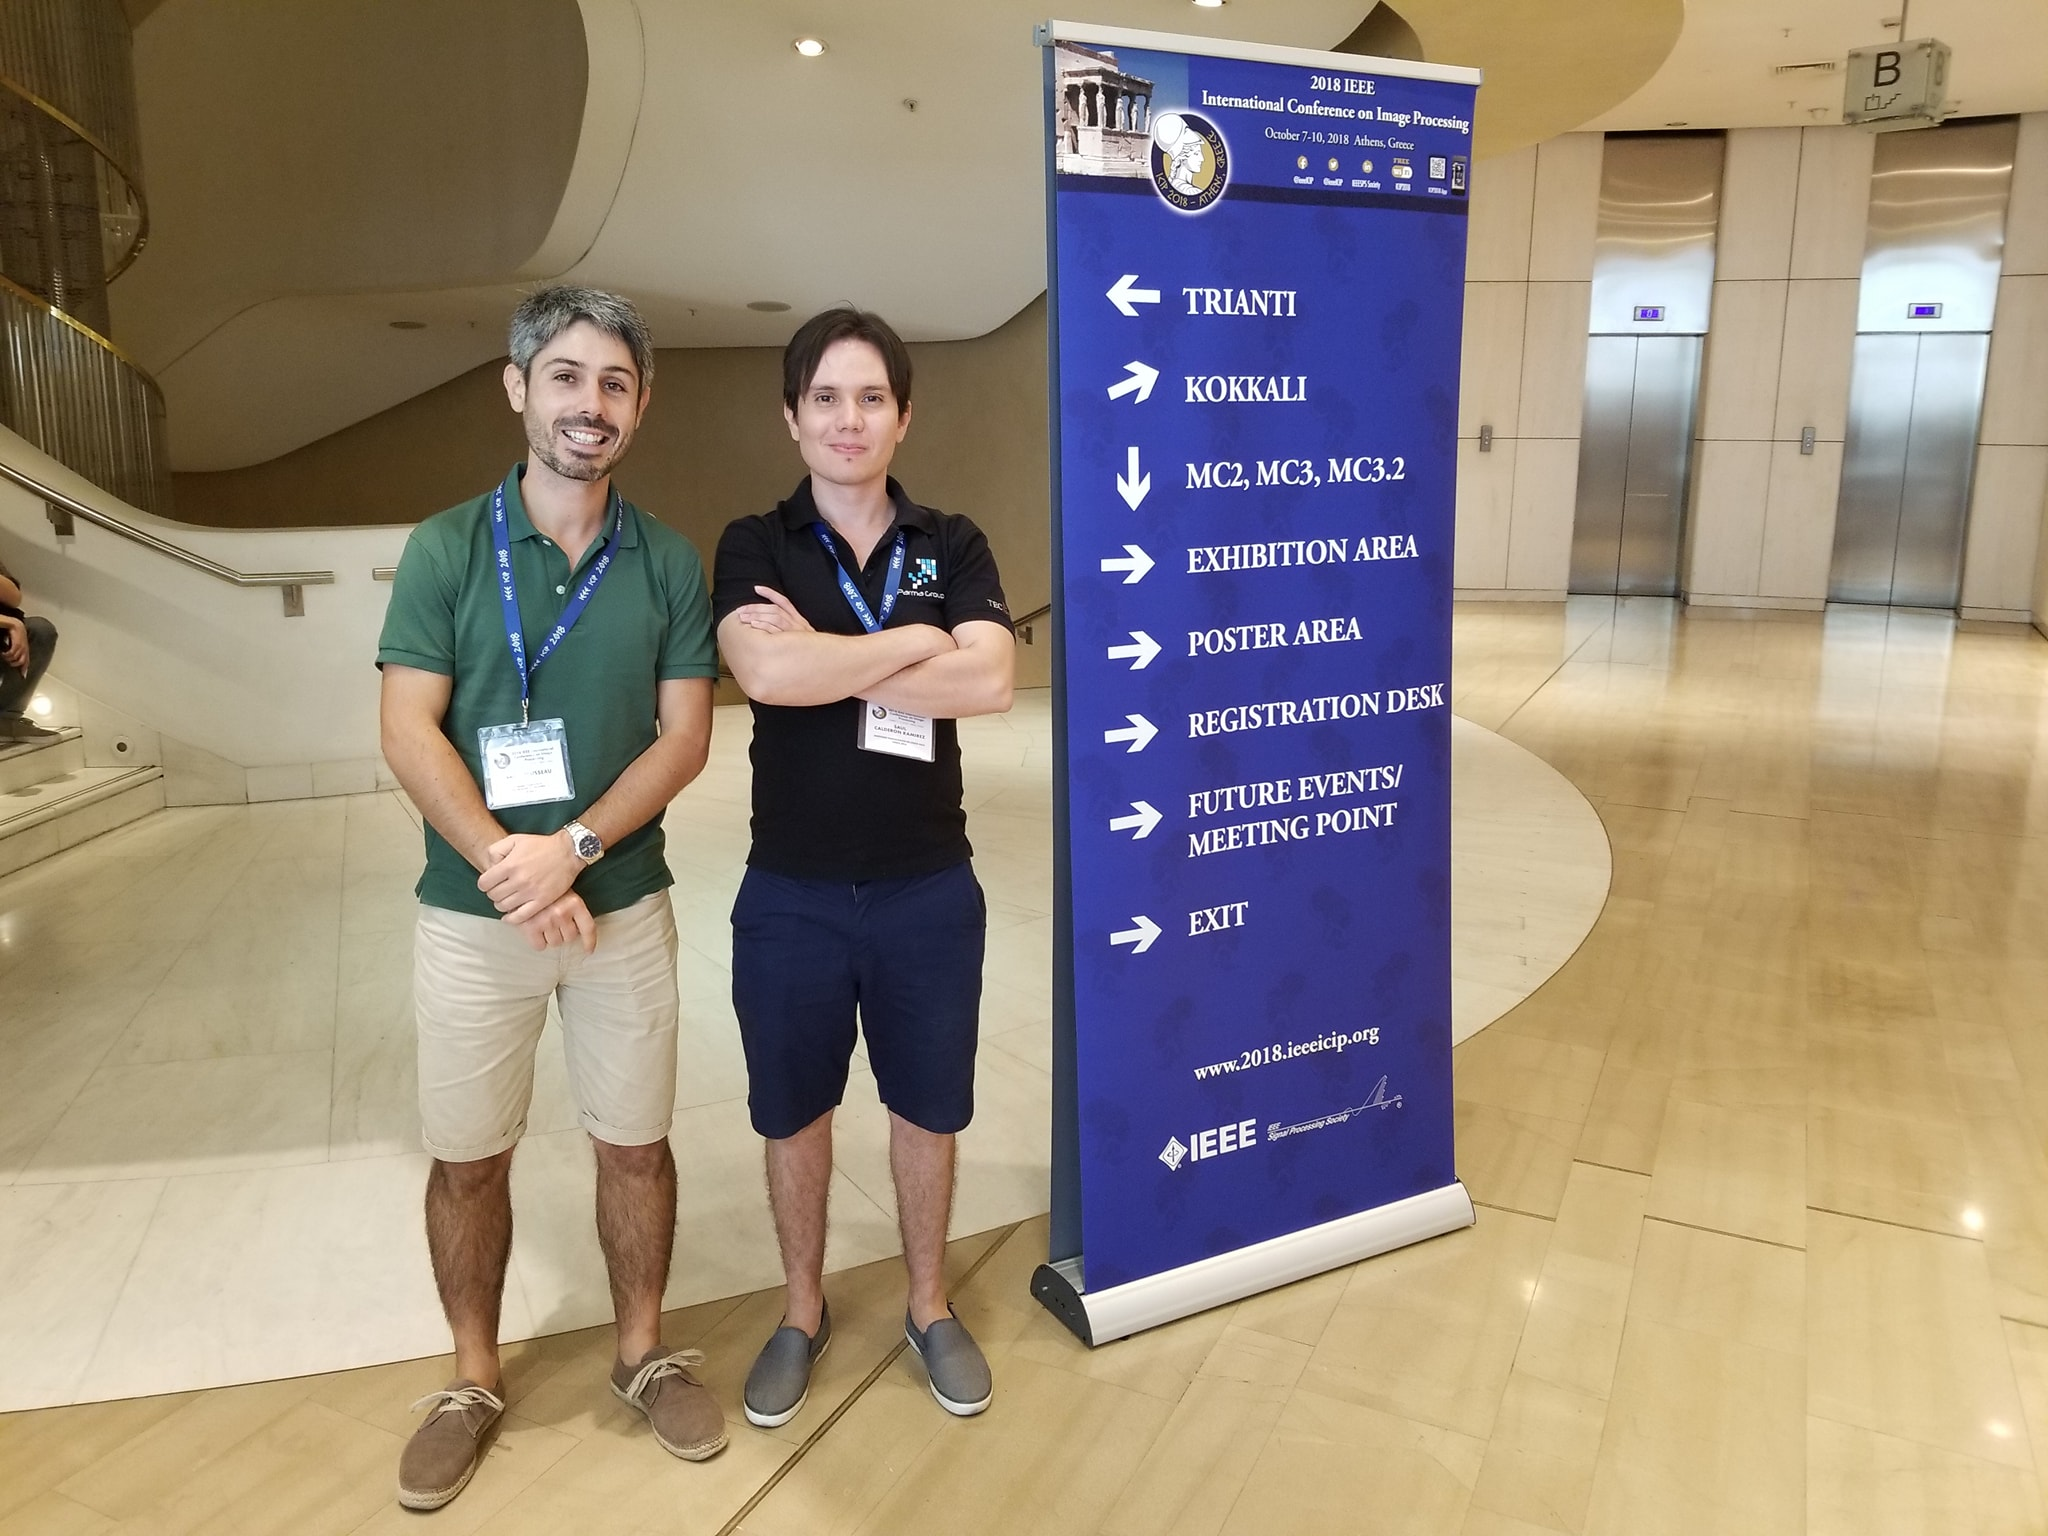 Participation of Saúl Calderón in International Conference on Image Processing 2018, in Athens, Greece.